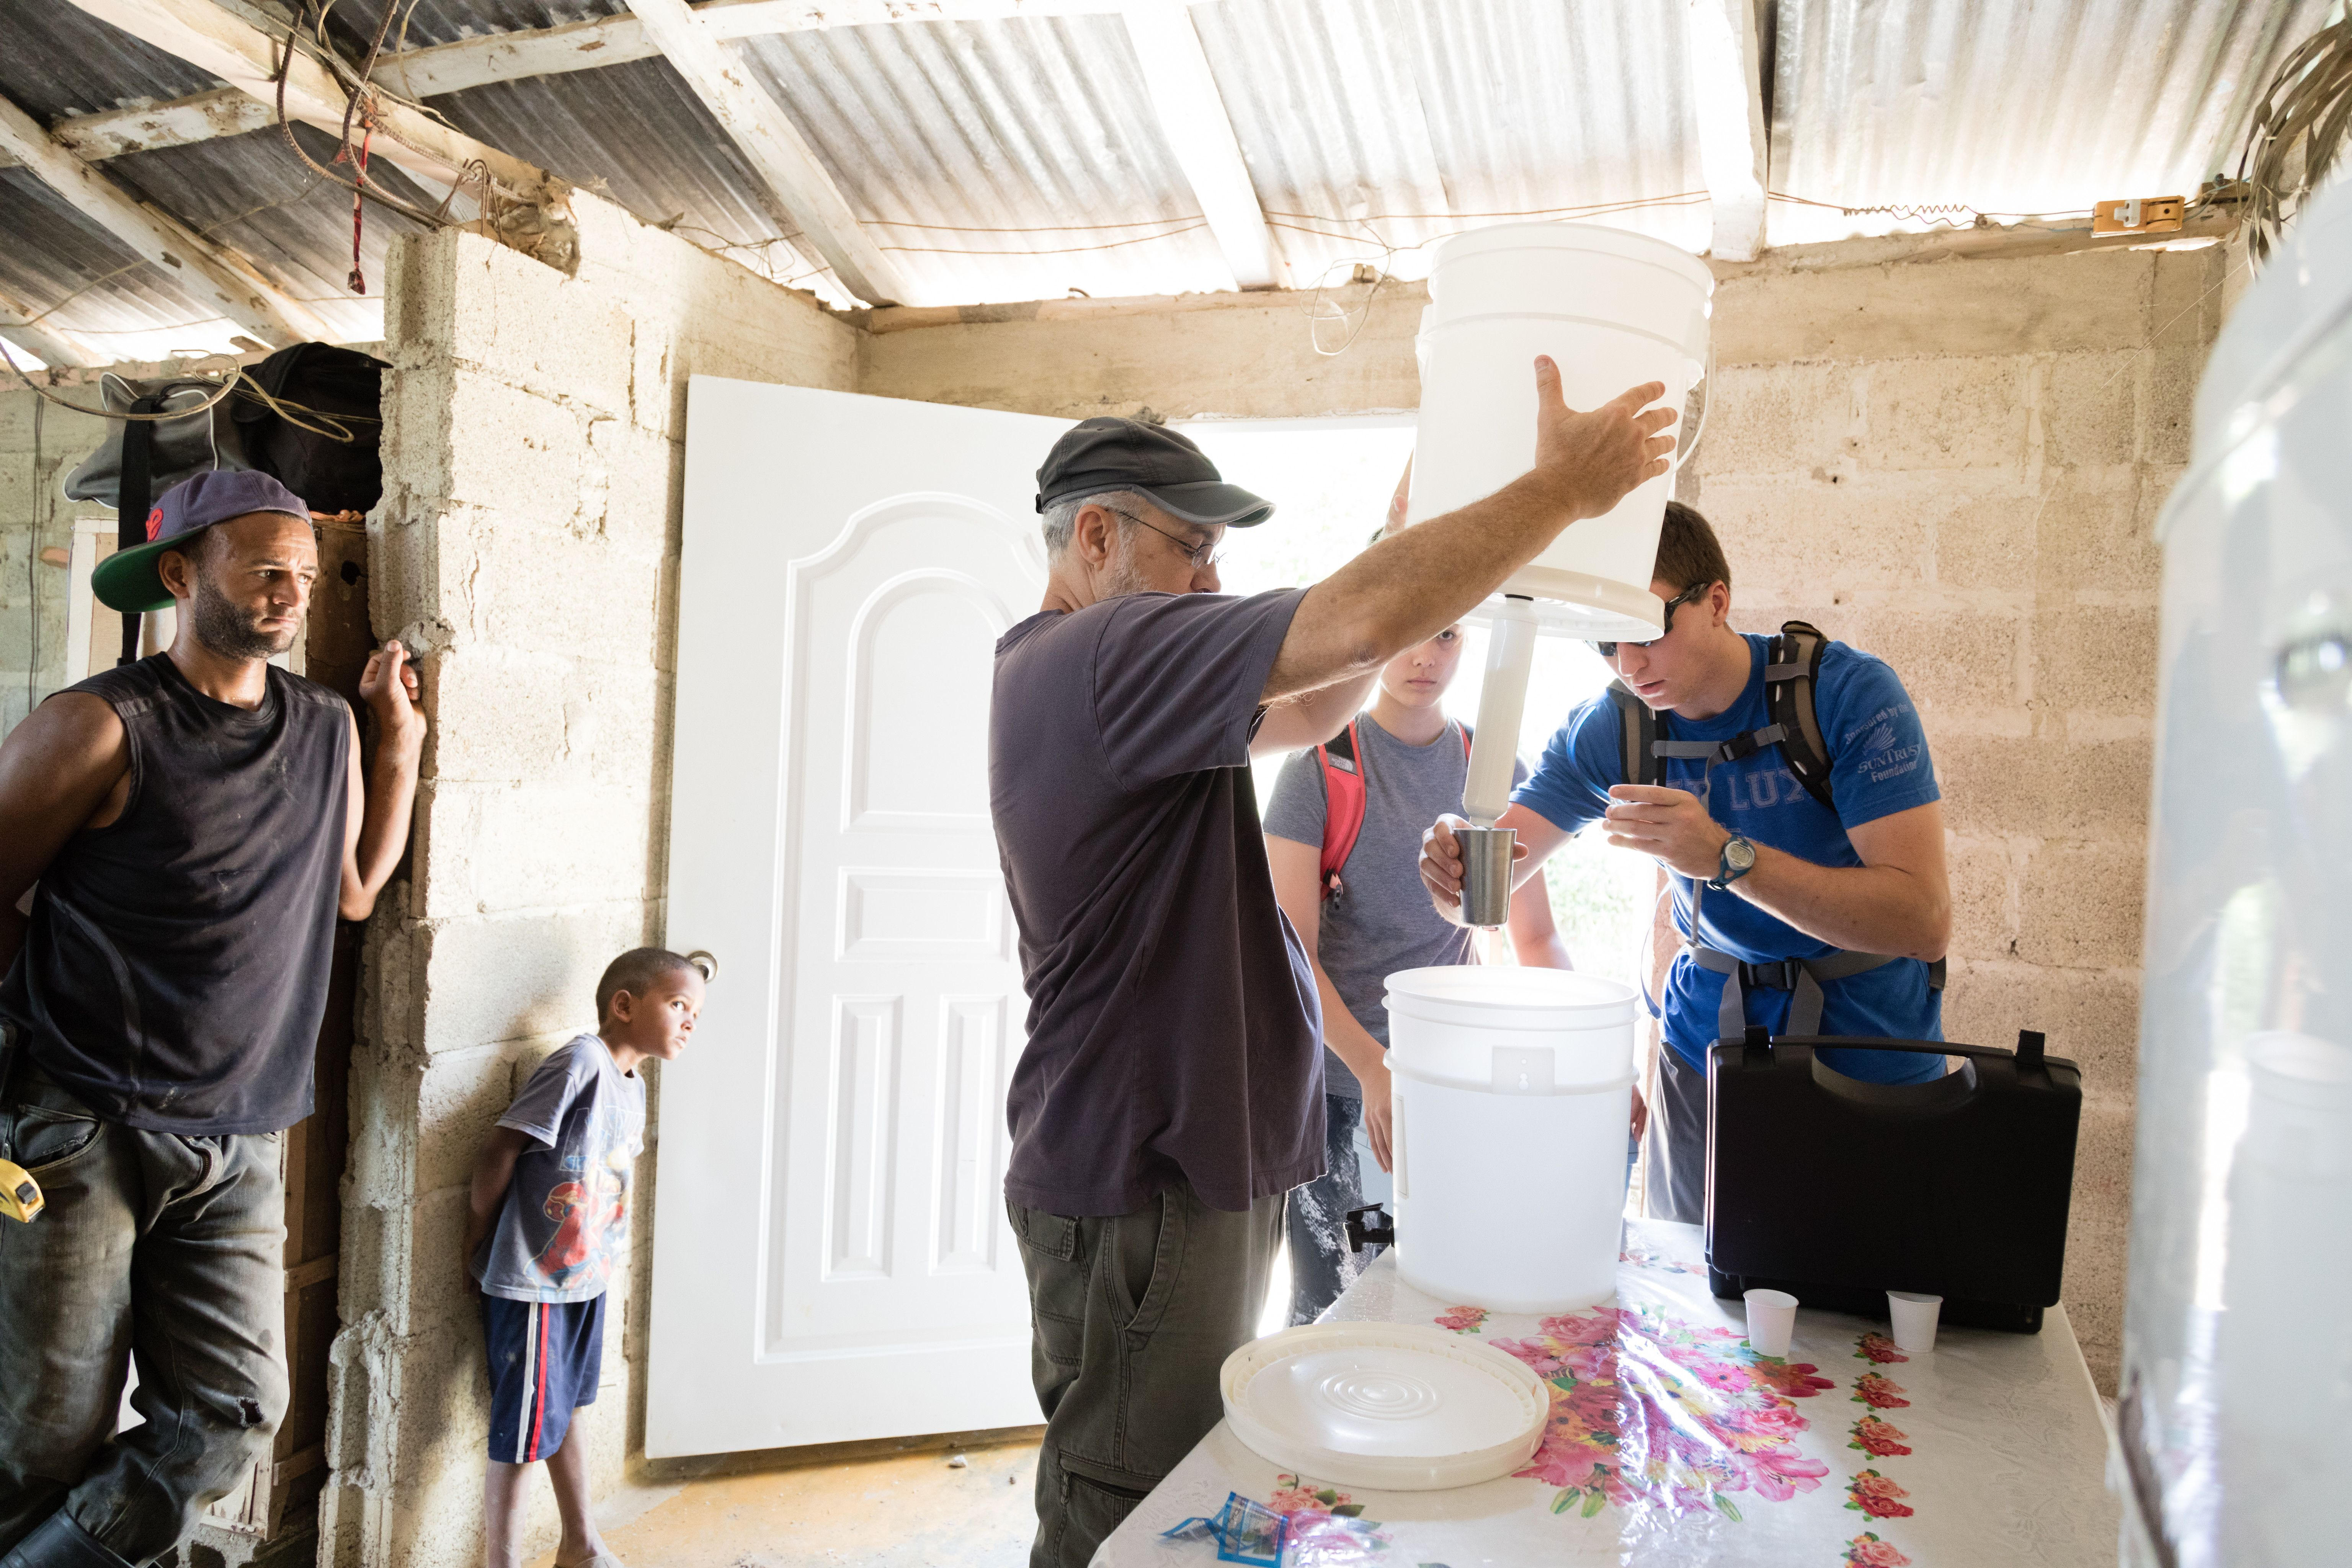 Chemistry professor Pedro Bernal and his students test a water filtration system in the Dominican Republic.